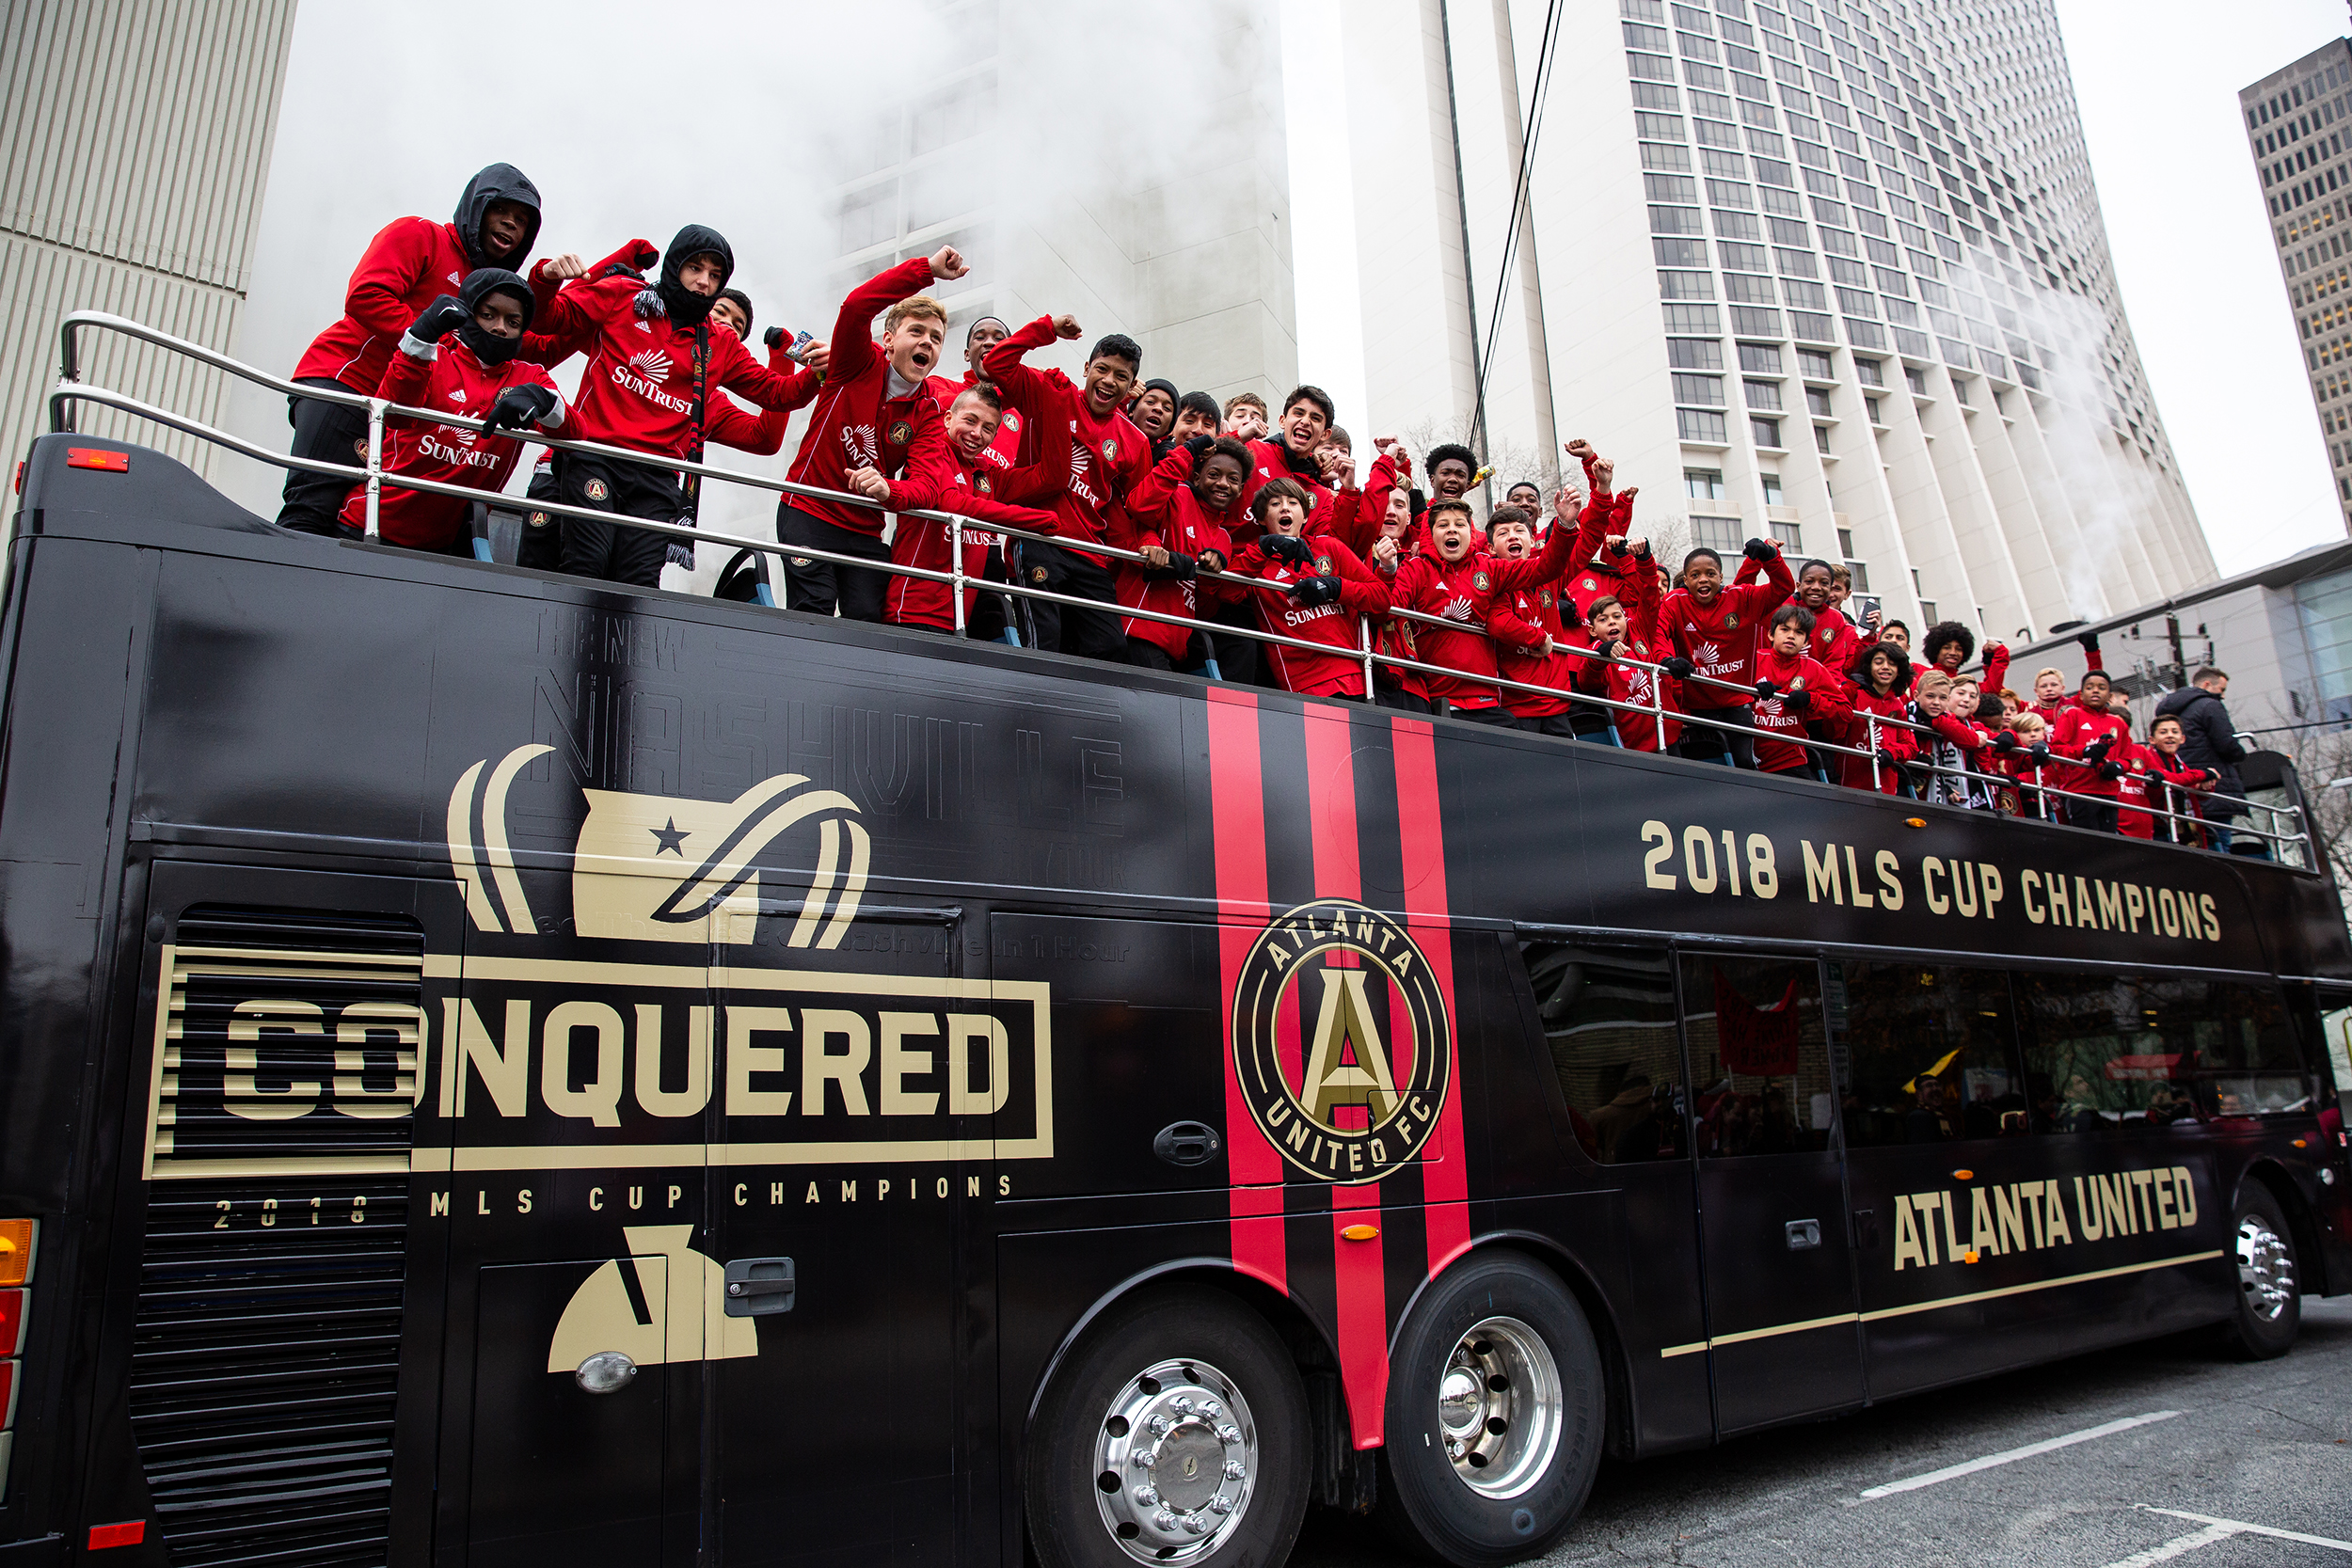 MLSCupVictoryParade_ER_12102018_00005.jpg